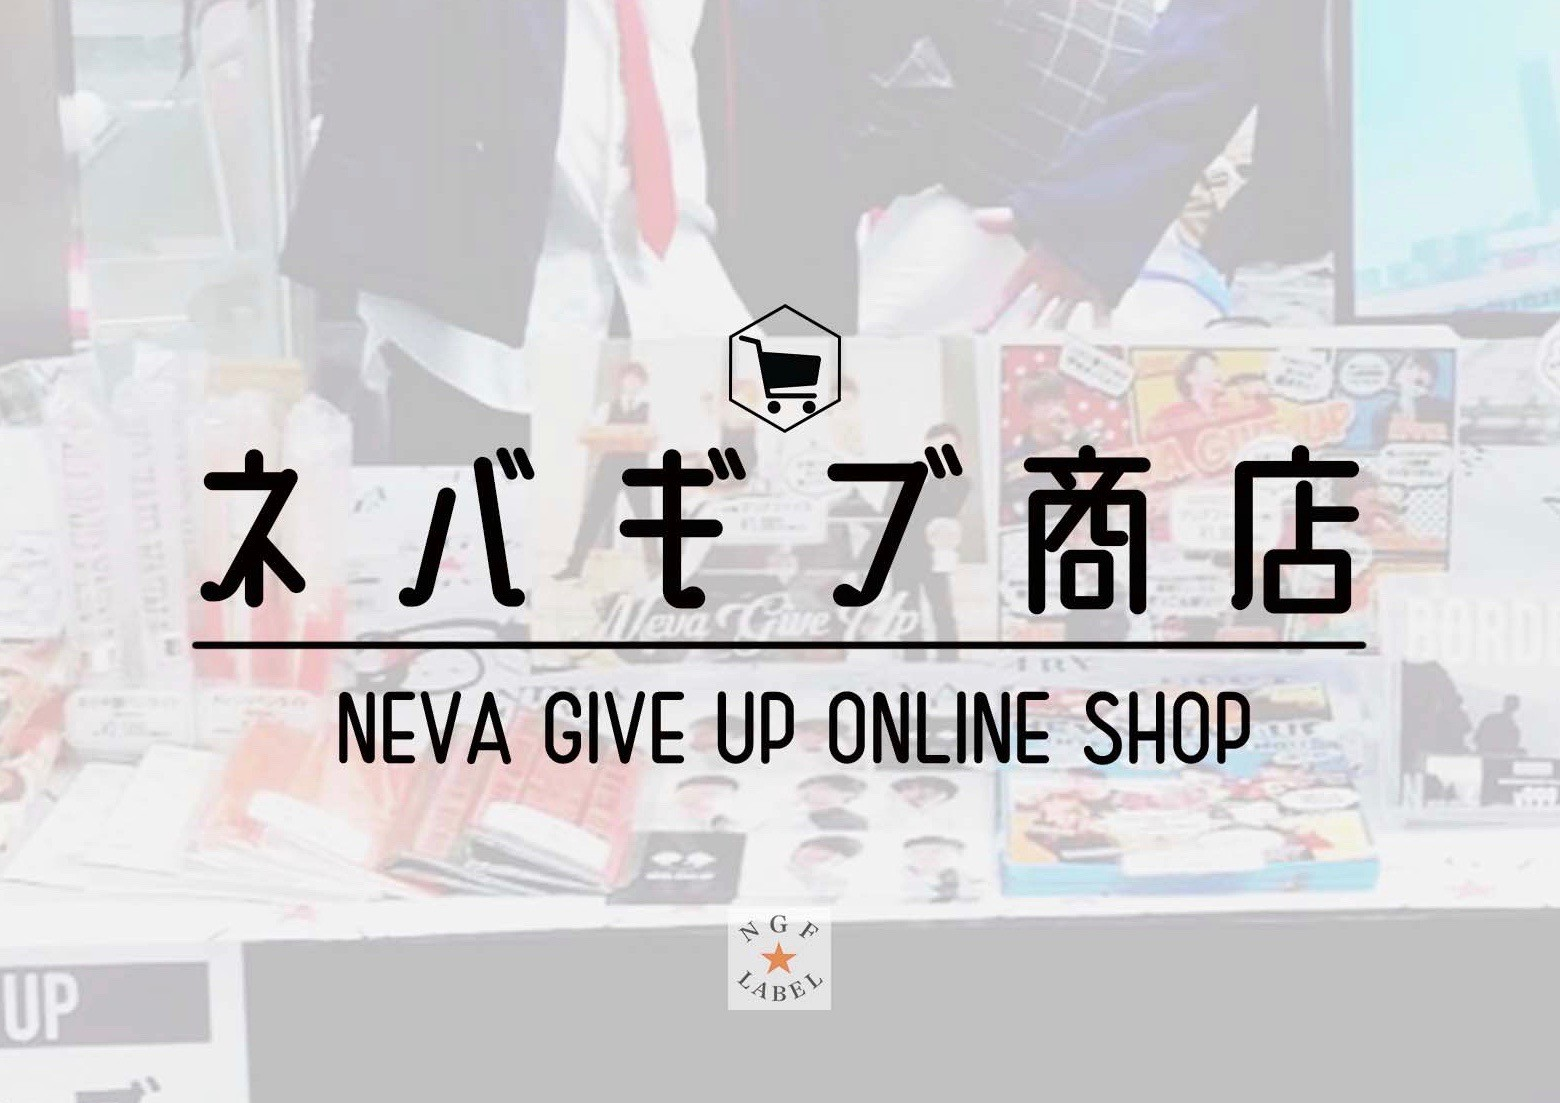 NEVA GIVE UP ONLINE SHOP